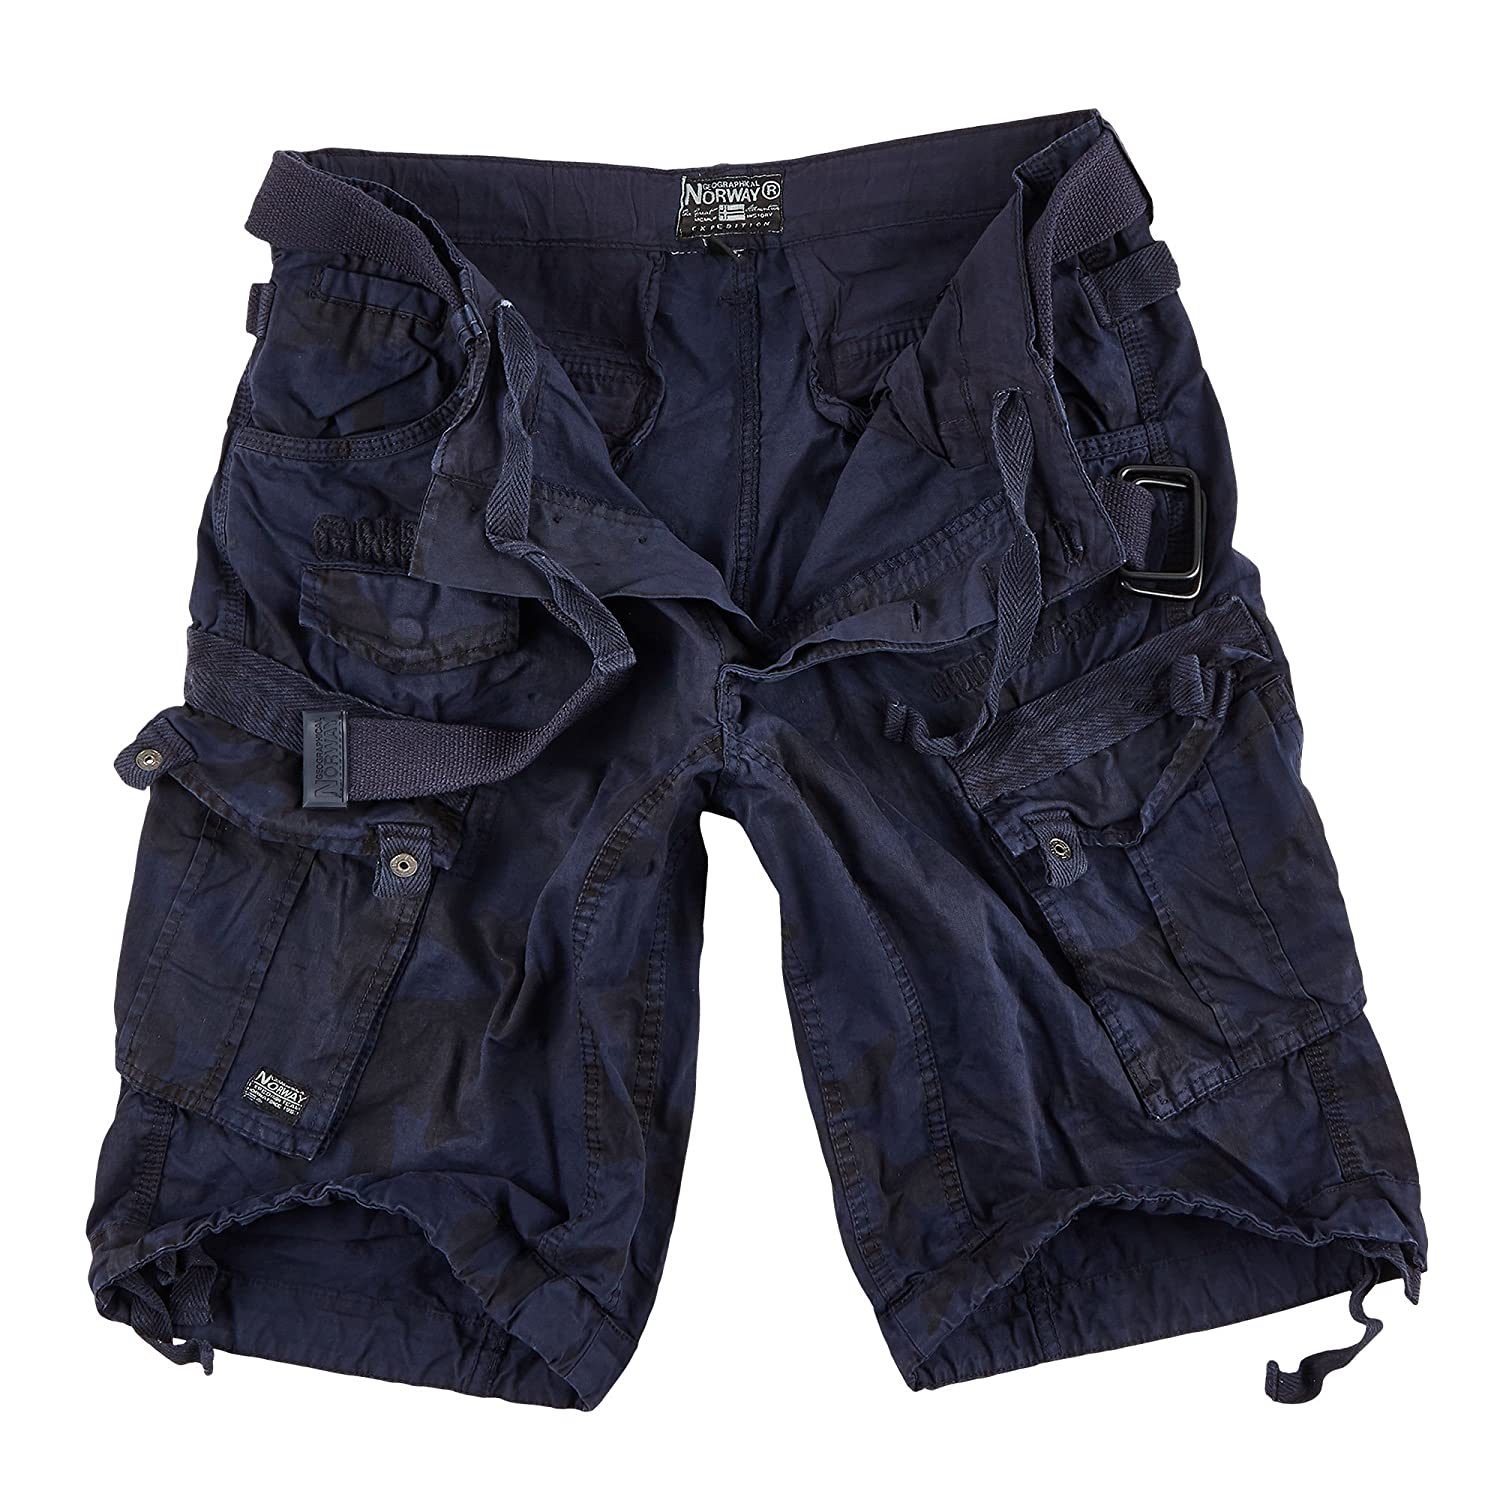 Geographical Norway Men's Cargo Short People